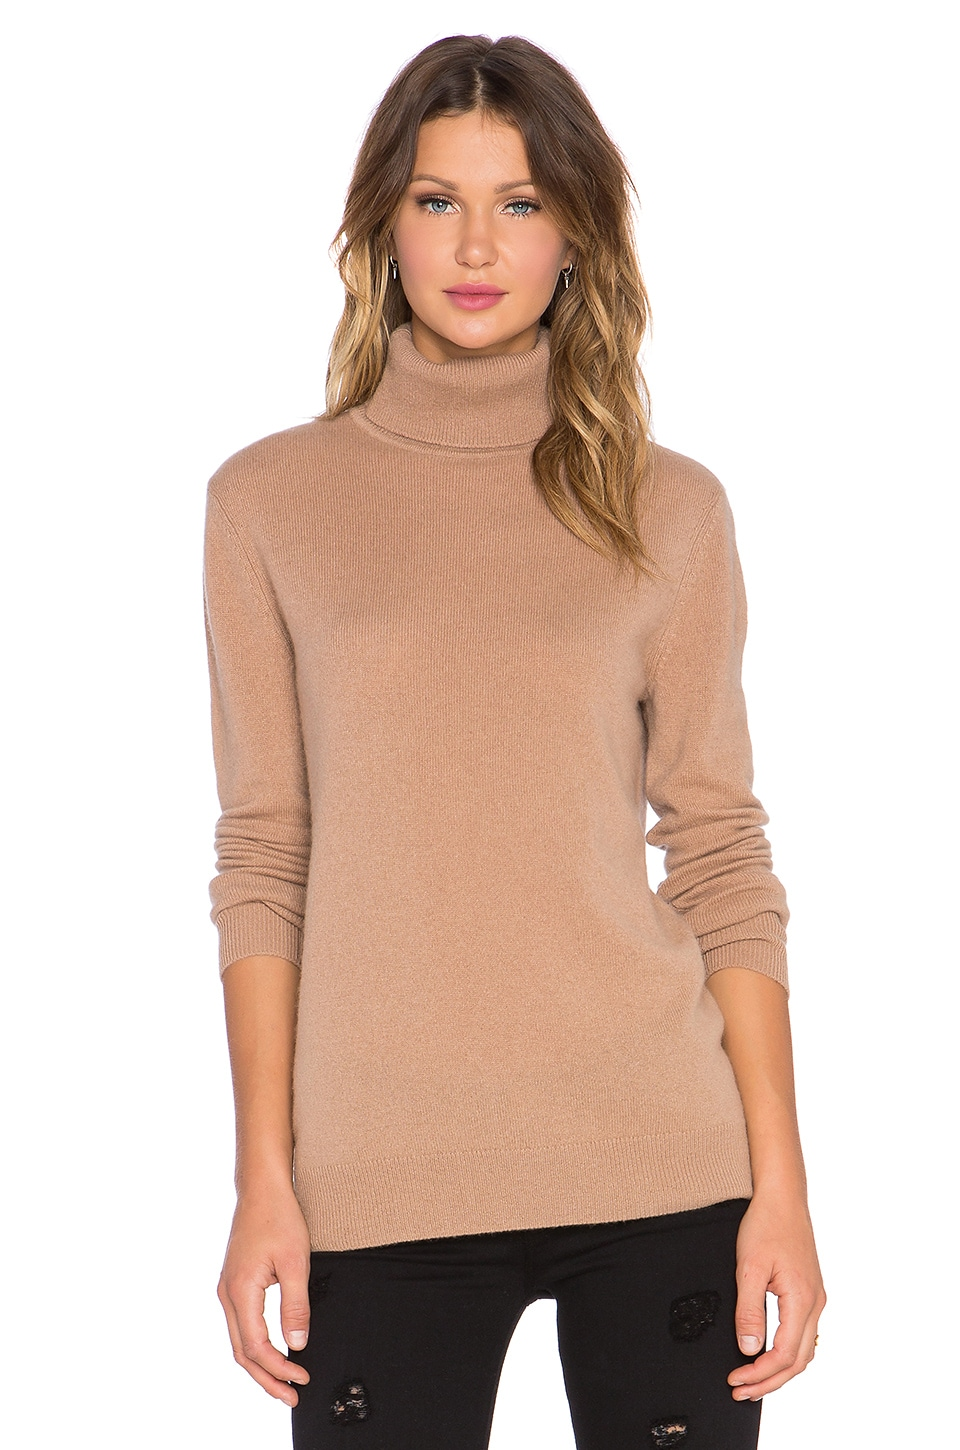 Equipment Oscar Turtleneck Cashmere Sweater in Camel | REVOLVE